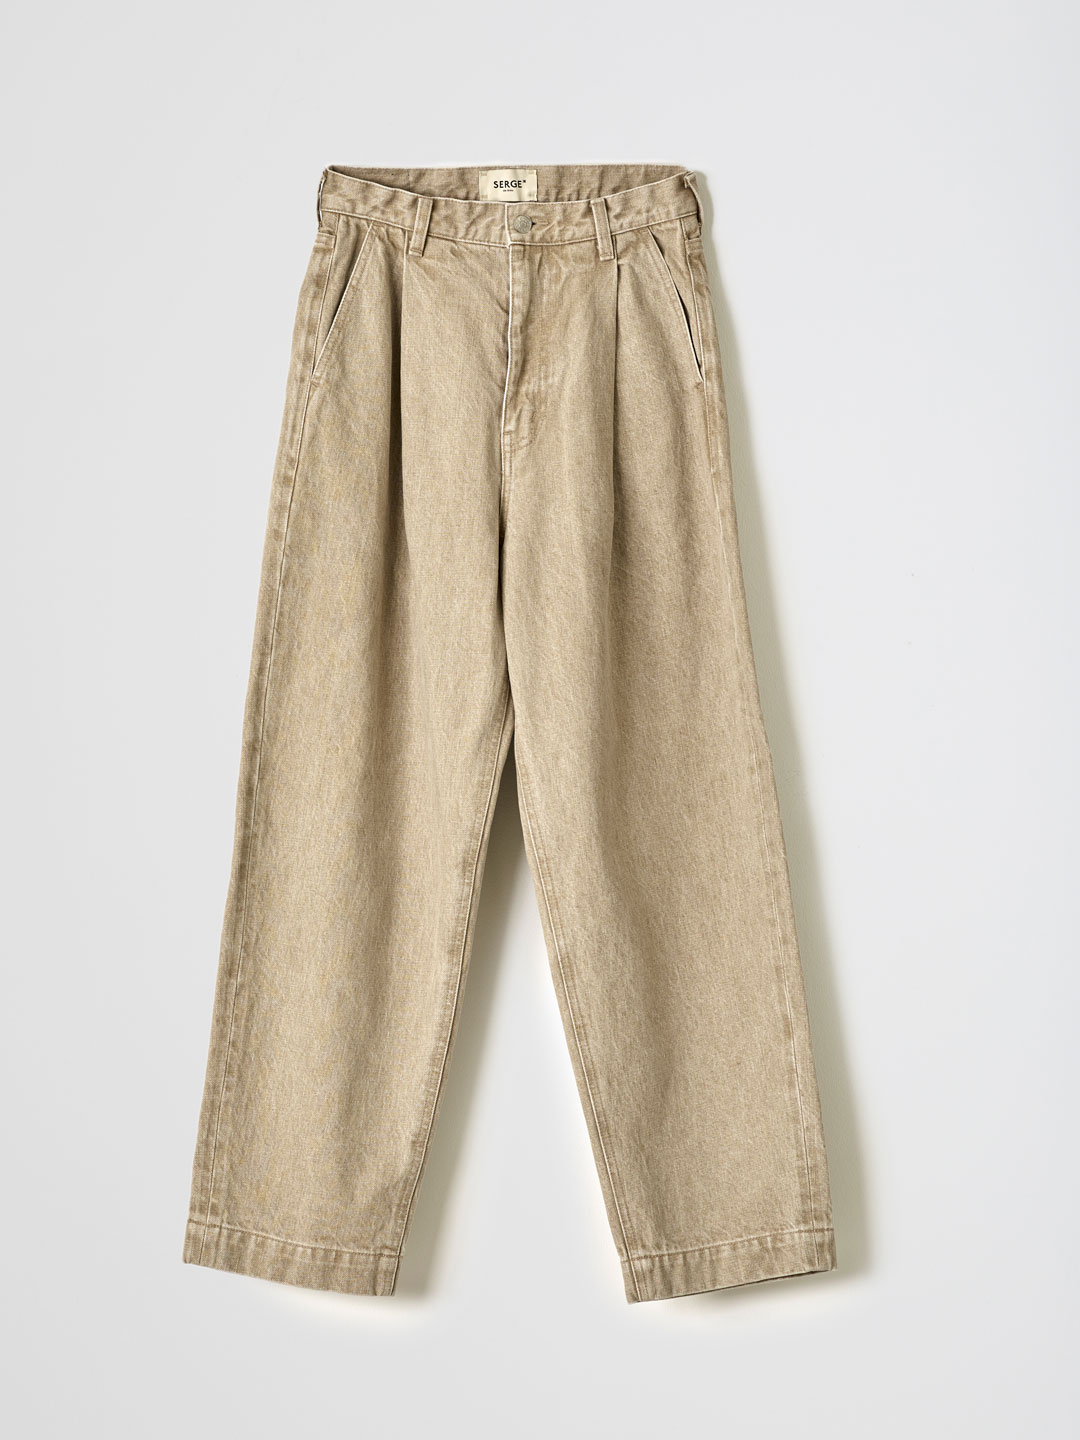 SERGE dodo bleu TACKS PANTS - Beige